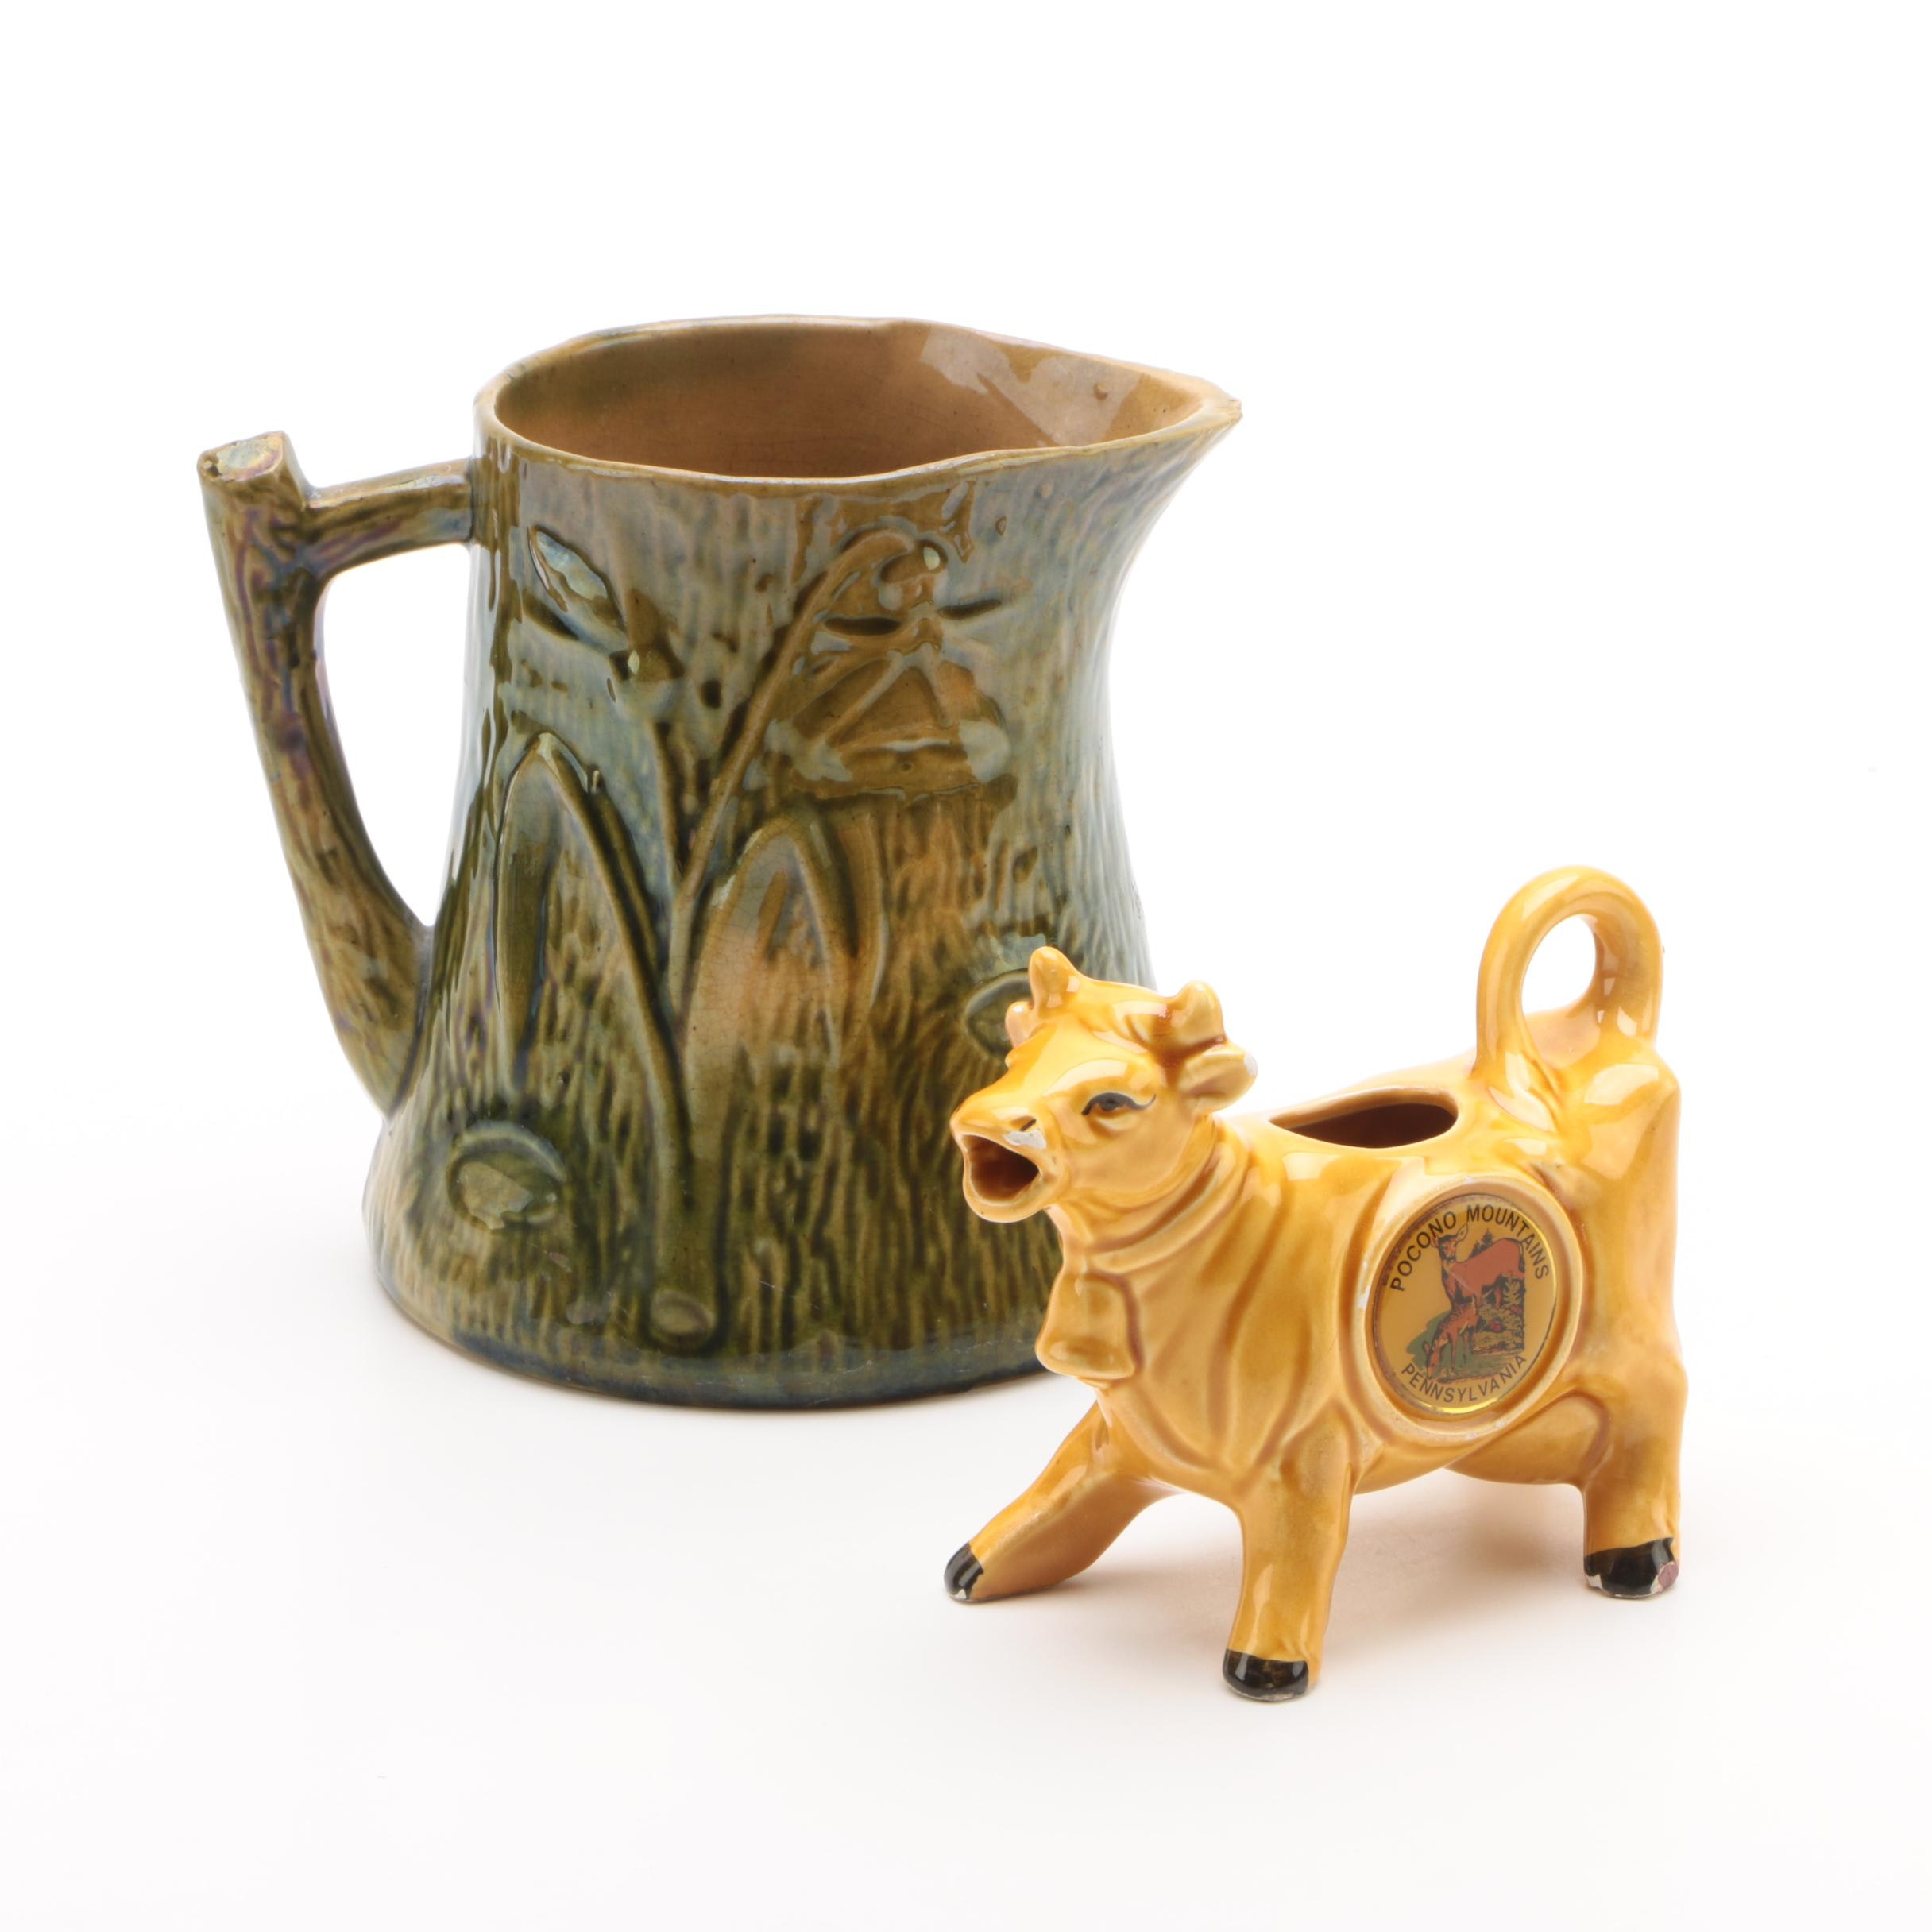 Ceramic Pitchers Including Figural Cow Creamer